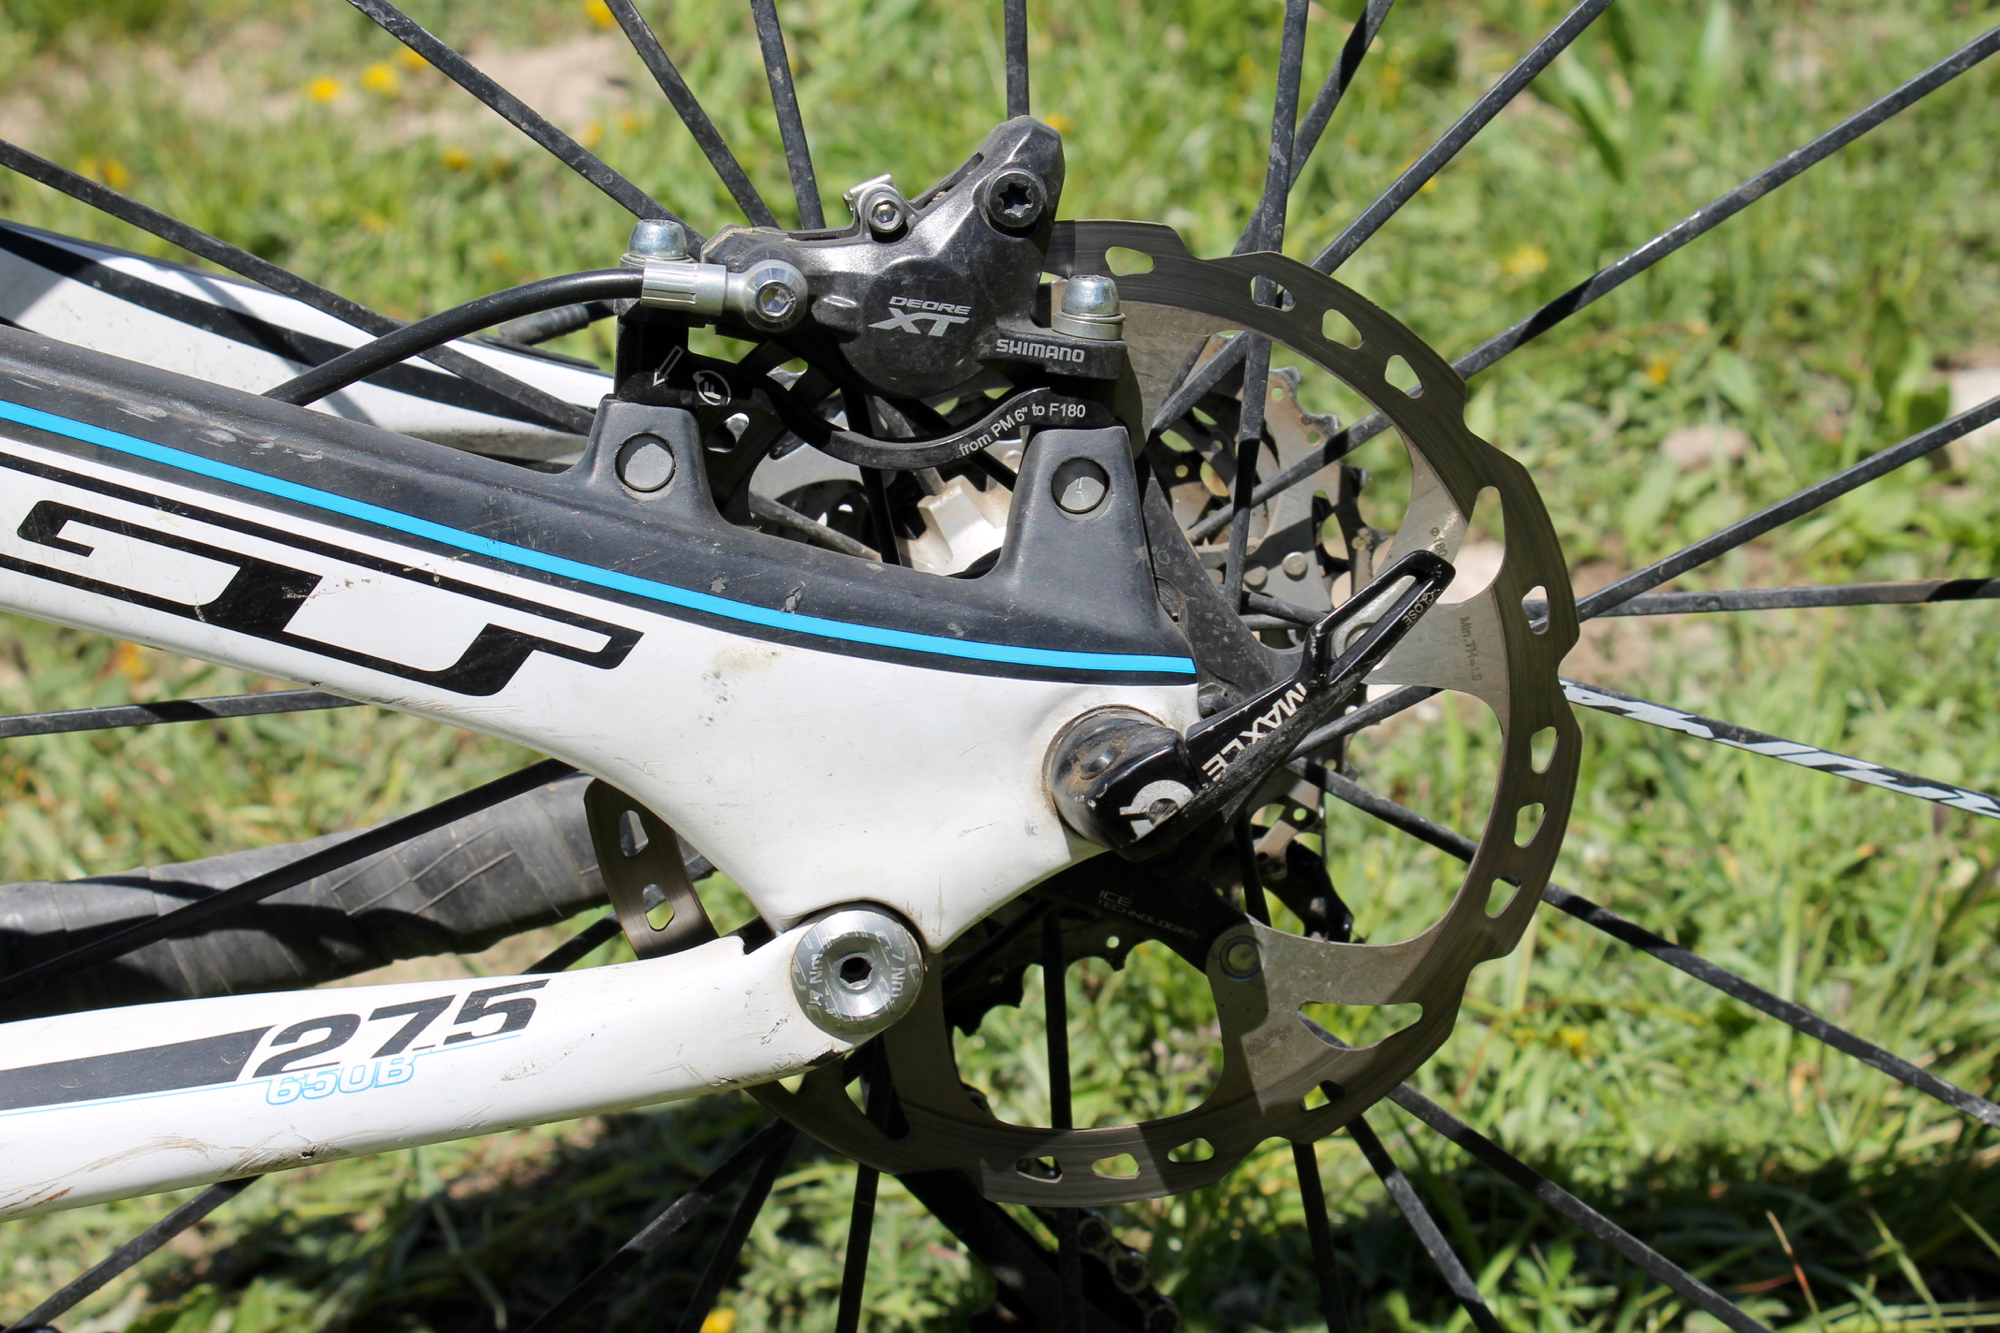 """f1ffb58c46f I have been testing the 2016 Deore XT M8000 brakes (referred to simply as """" XT"""" below) for about a year and a half now. You might rightly wonder why  I'd need ..."""